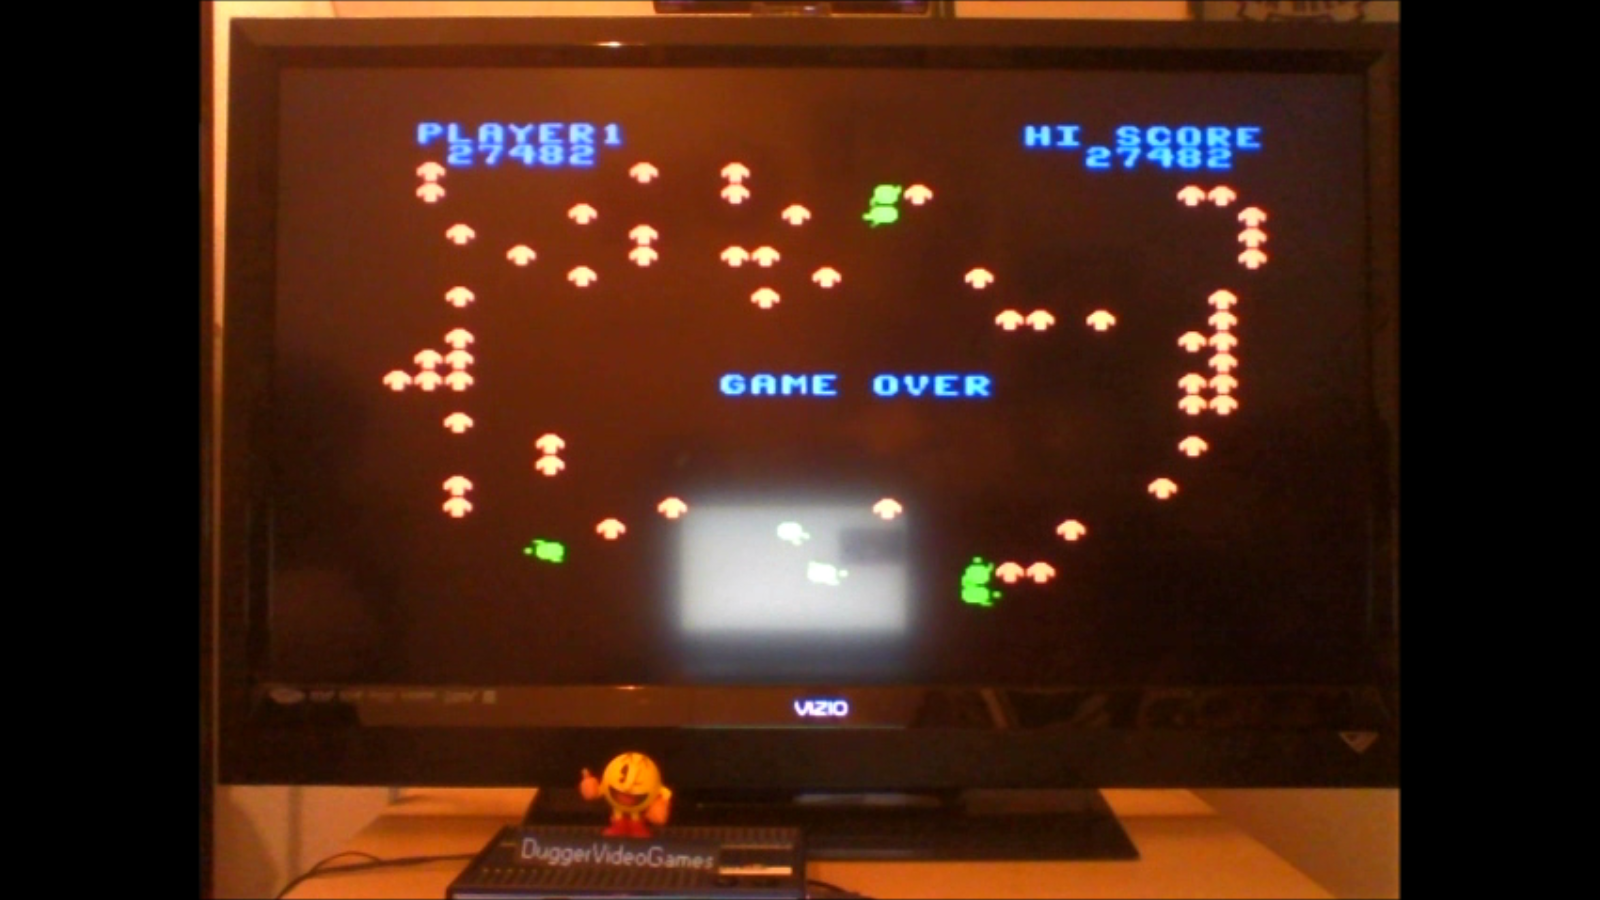 DuggerVideoGames: Centipede: Hard (Colecovision Emulated) 27,482 points on 2016-07-09 01:44:16